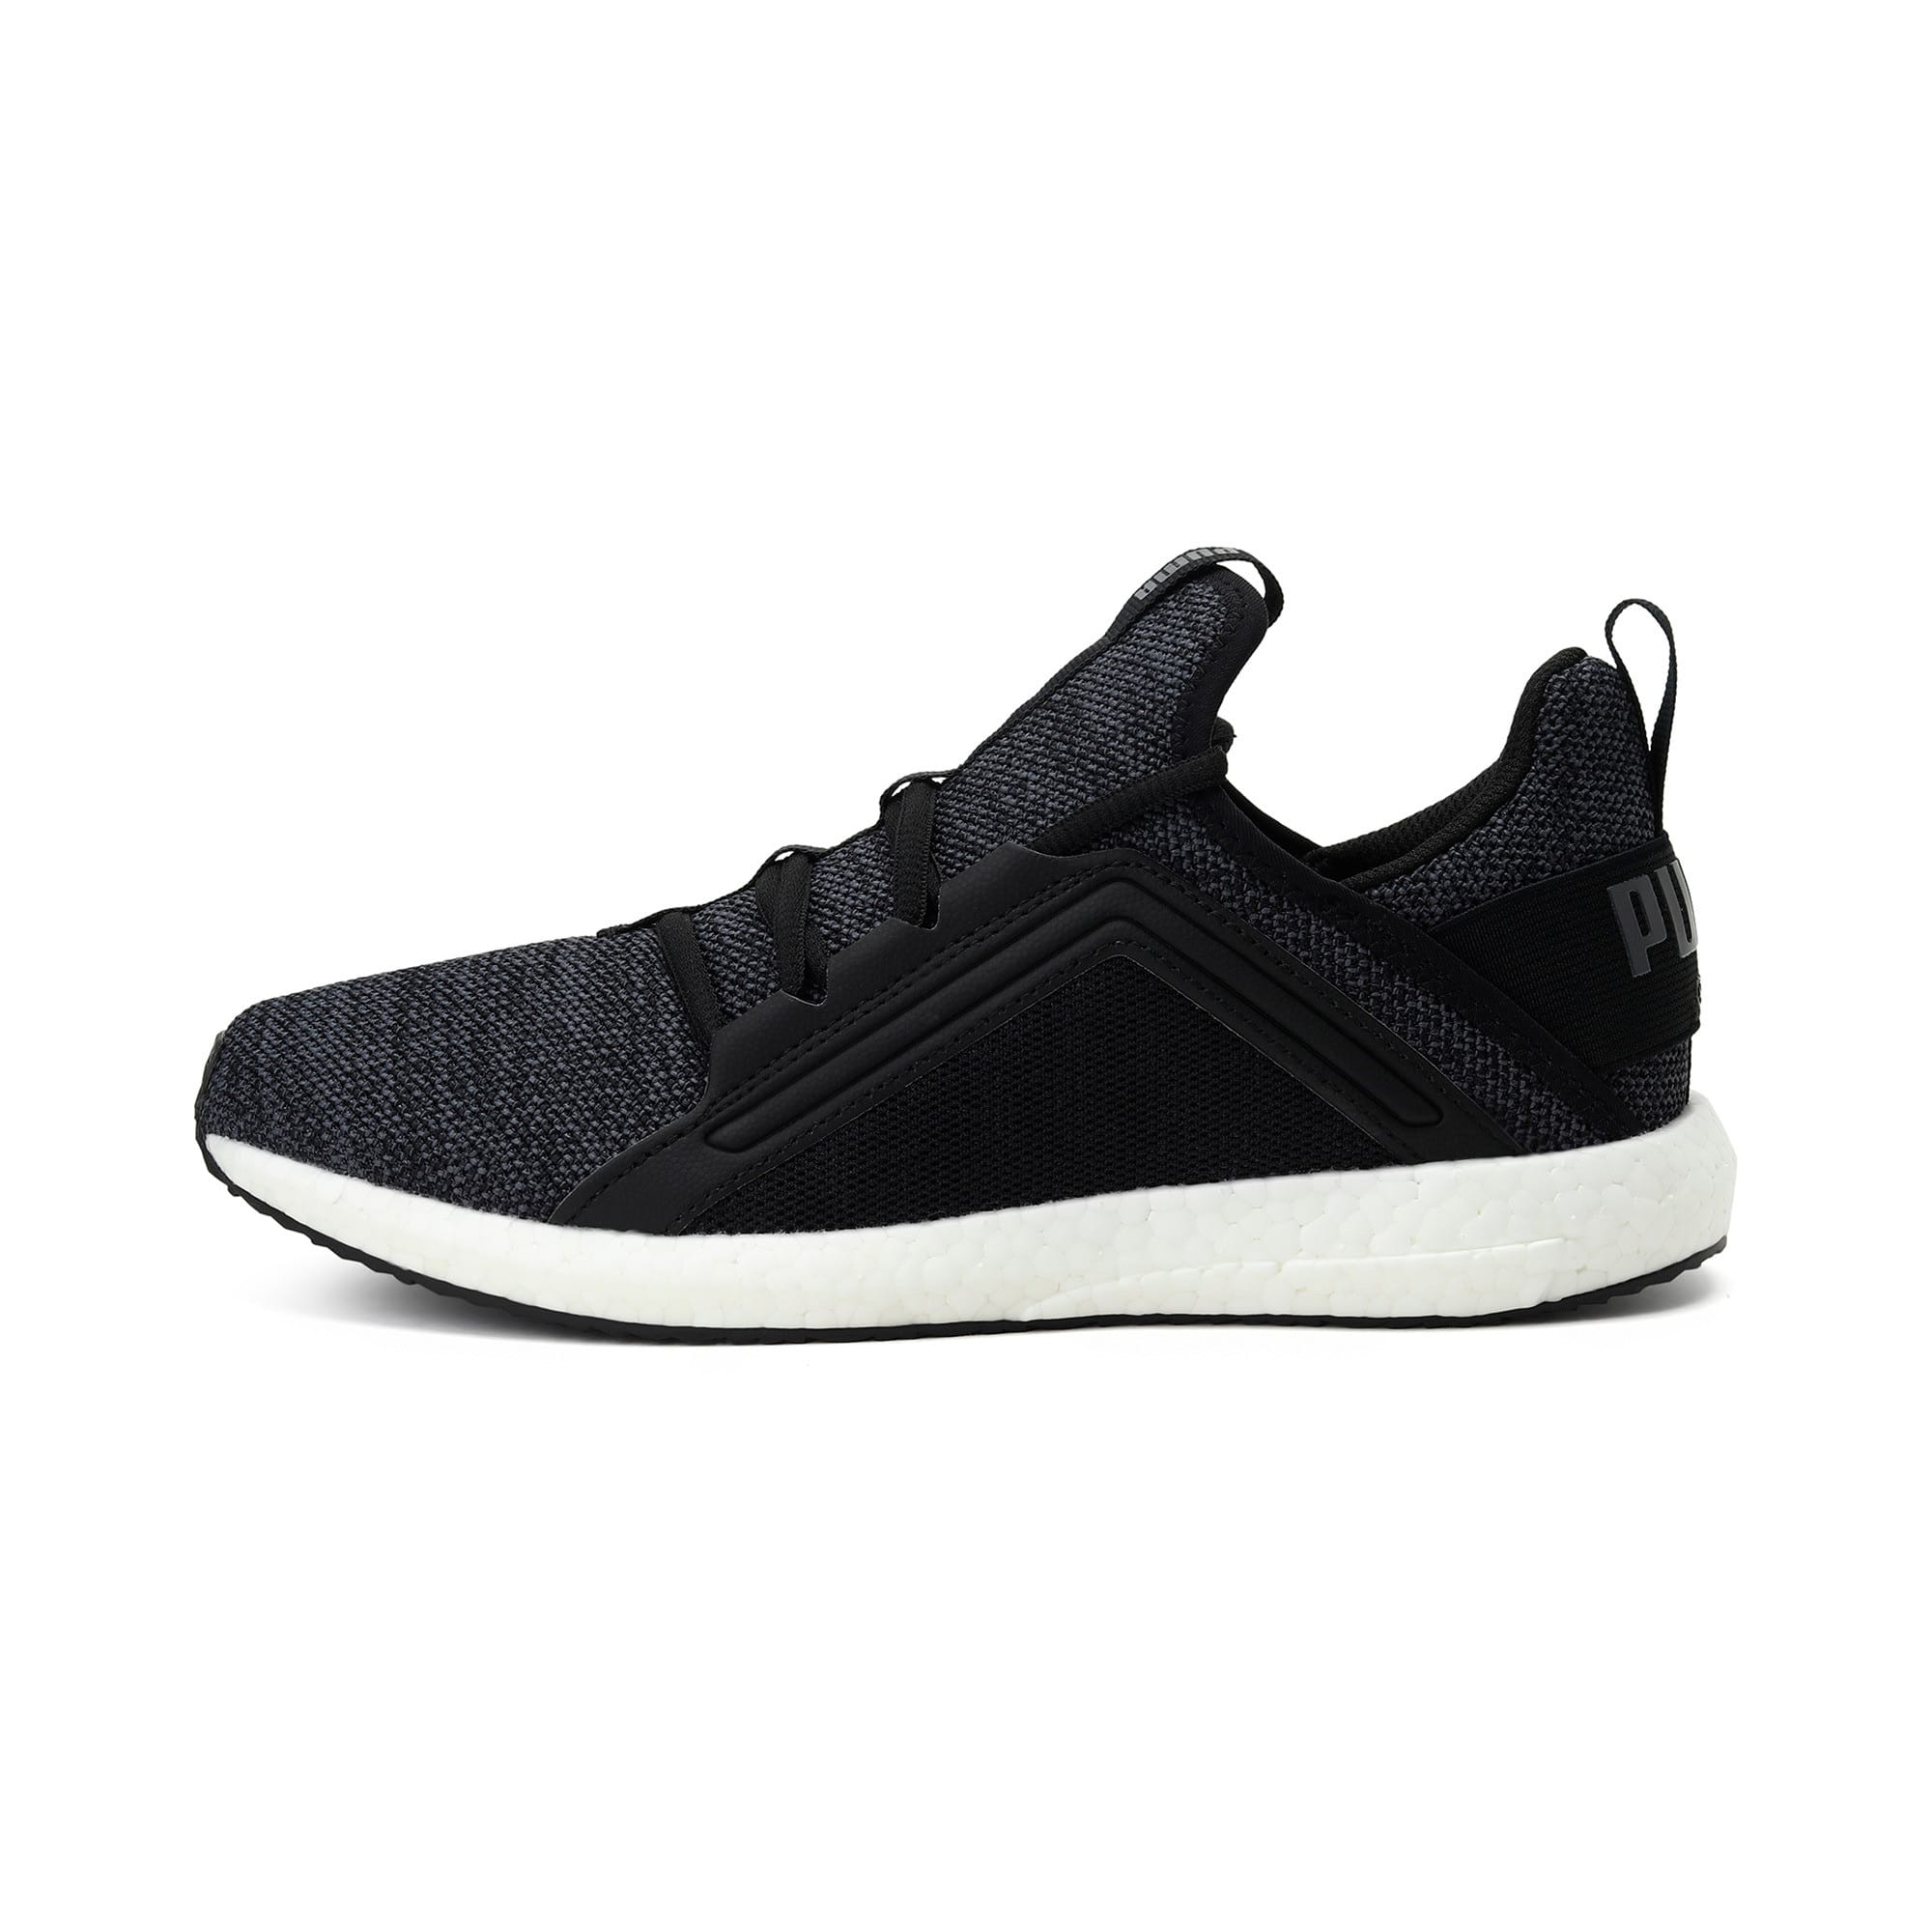 Thumbnail 1 of Mega NRGY Knit Women's Trainers, Puma Black-Asphalt, medium-IND